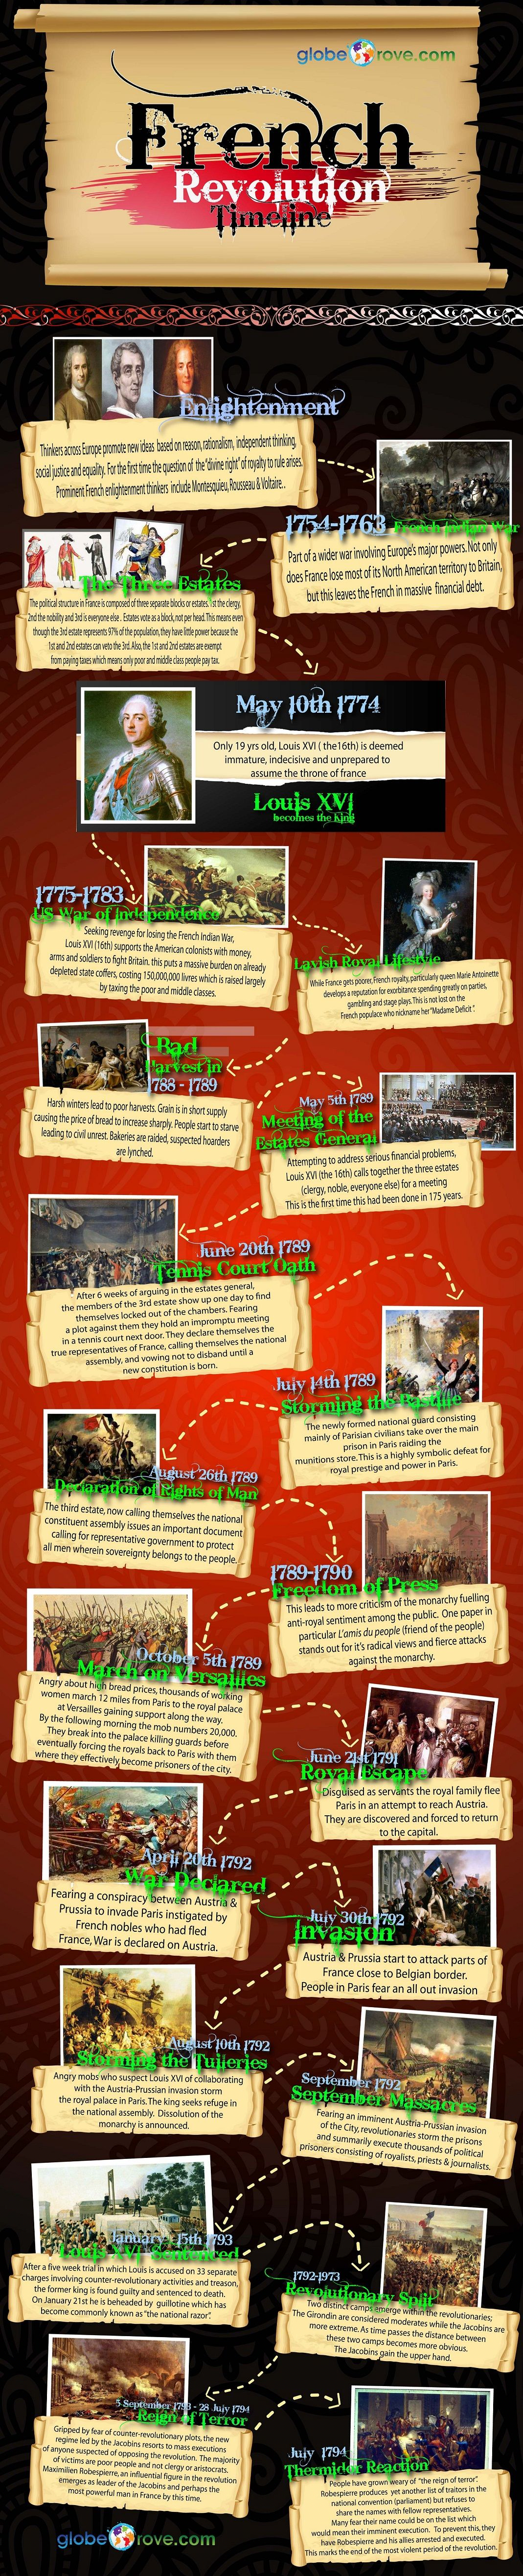 Learn More About French In Your Homeschool Www Frenchessentials Com French Revolution Military History Books Military History